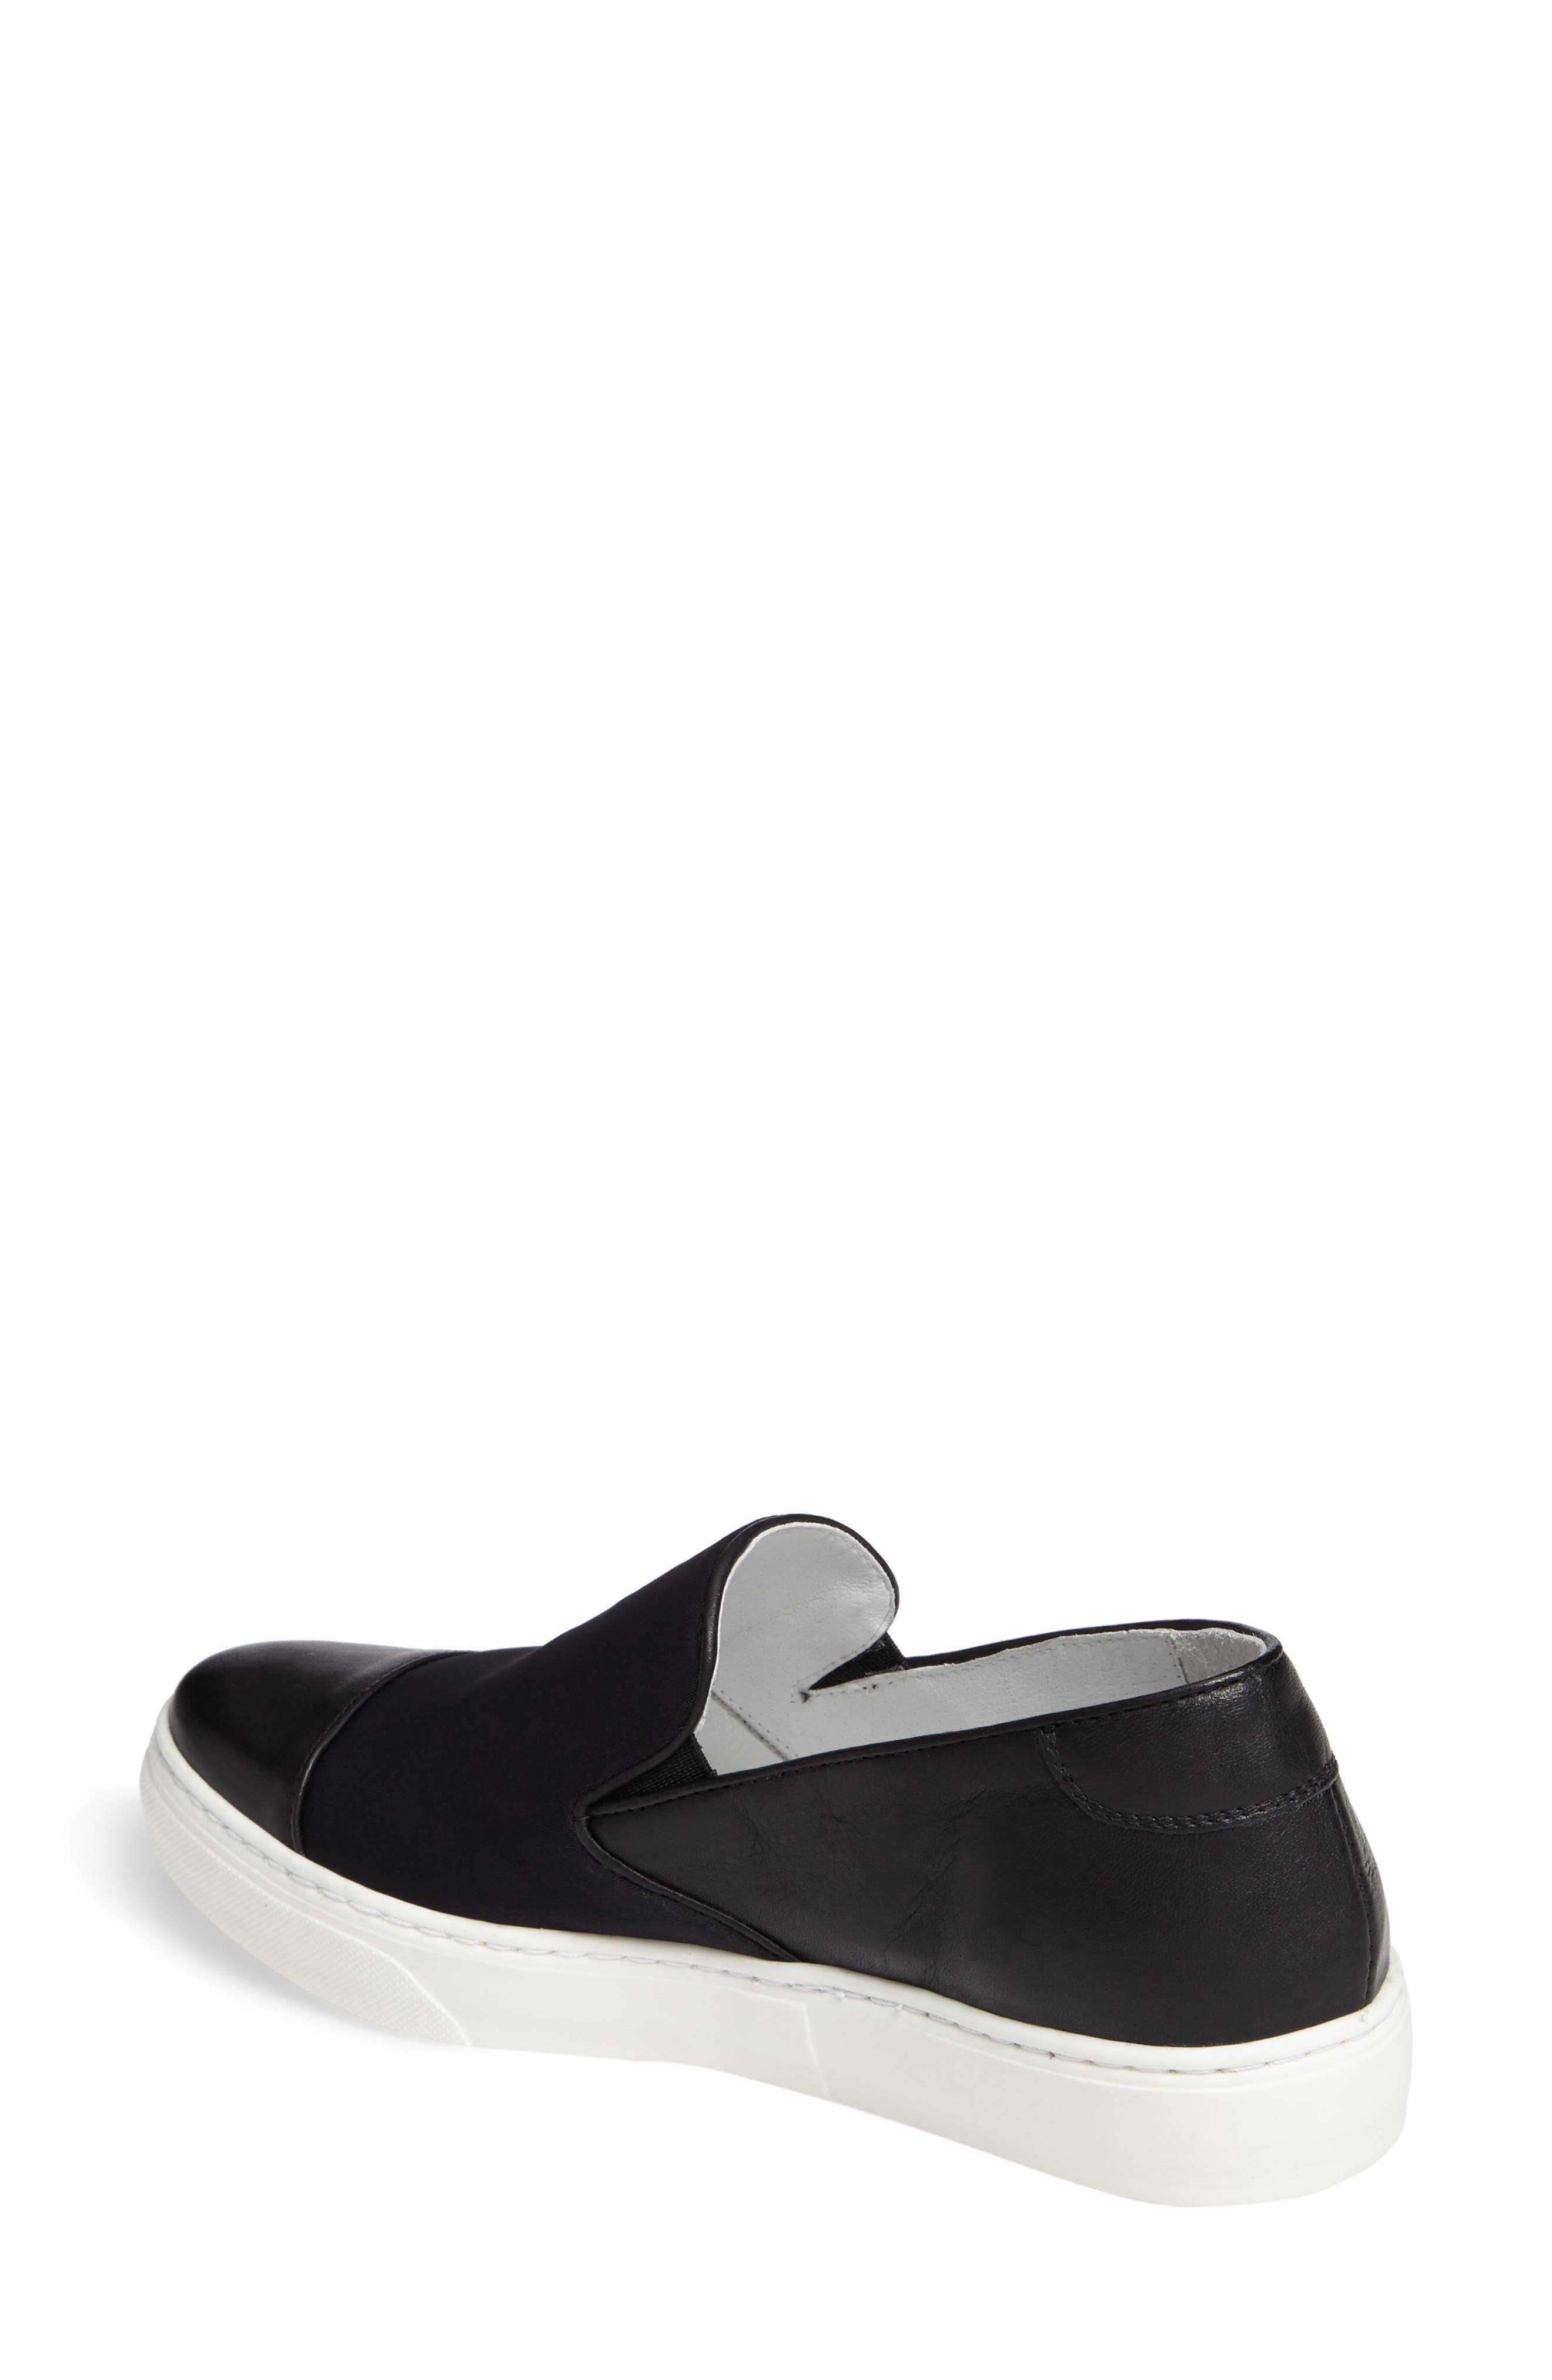 Alternate Image 2  - Rudsak Betsy Slip-On Sneaker (Women)